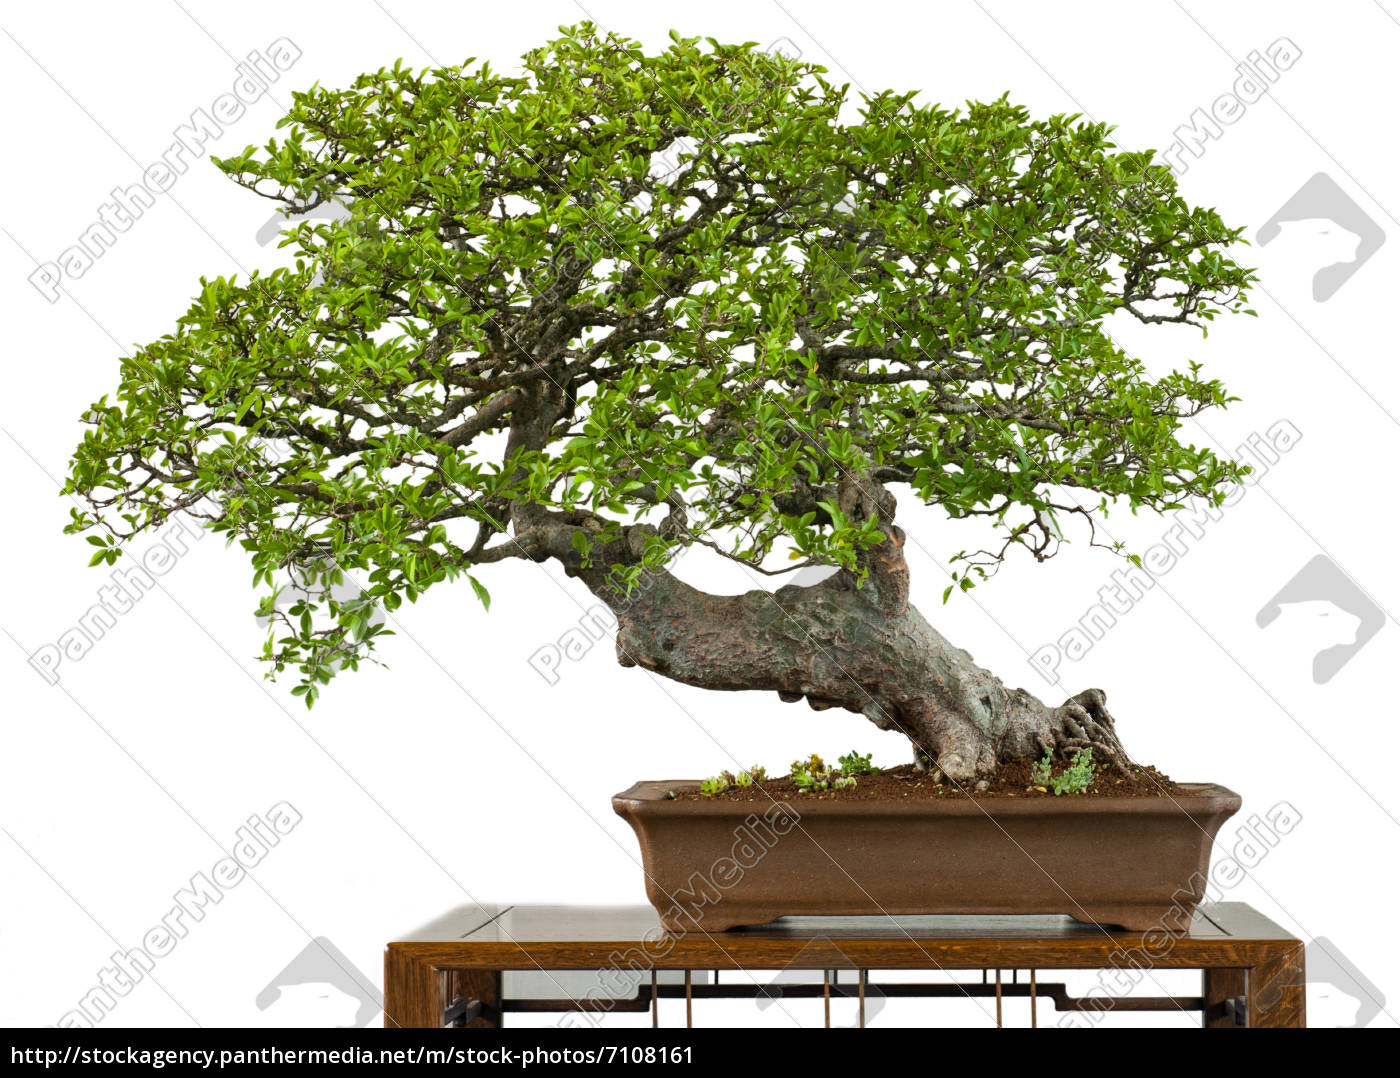 alte chinesische ulme als bonsai baum stockfoto 7108161 bildagentur panthermedia. Black Bedroom Furniture Sets. Home Design Ideas